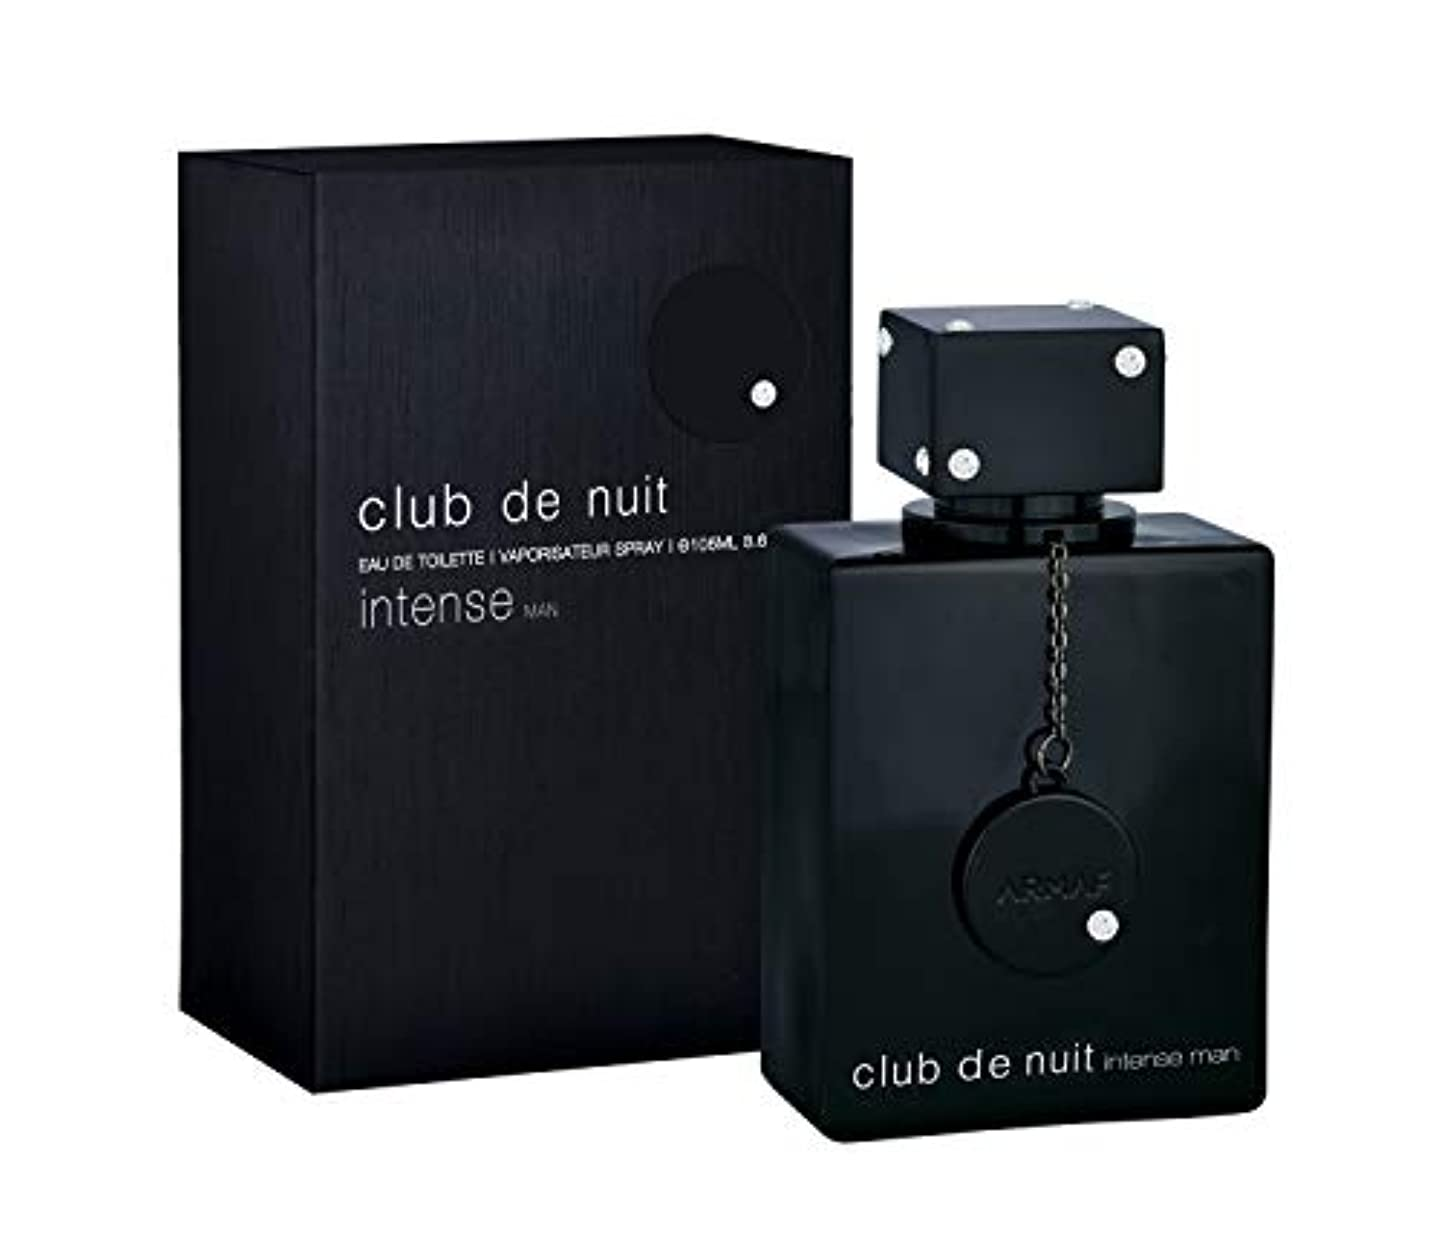 アルコーブ恨み強度Armaf club de nuit men intense Perfume EDT Eau De Toilette 100 ml Fragrance